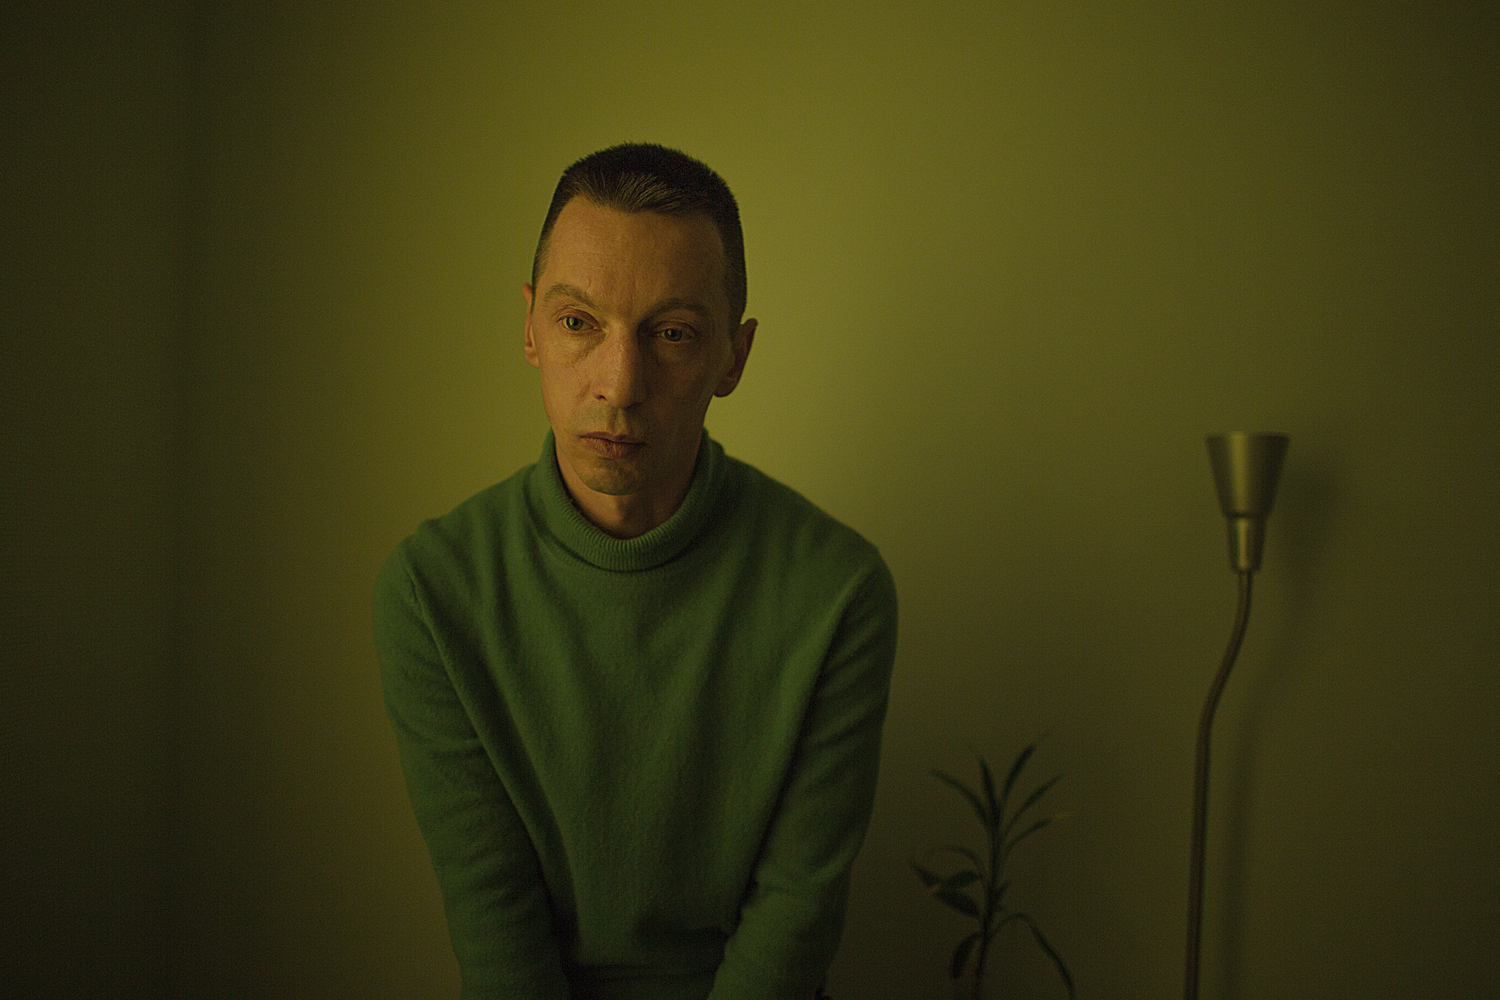 """Pavel, 44 years old, poses for a portrait at his apartment in St. Petersburg, Russia.   Pavel says: """"My mother's reaction was """"it is a teenage thing, you'll grow out of it, you simply haven't met the right girl yet."""" The most ridiculous thing is I was already 26."""""""